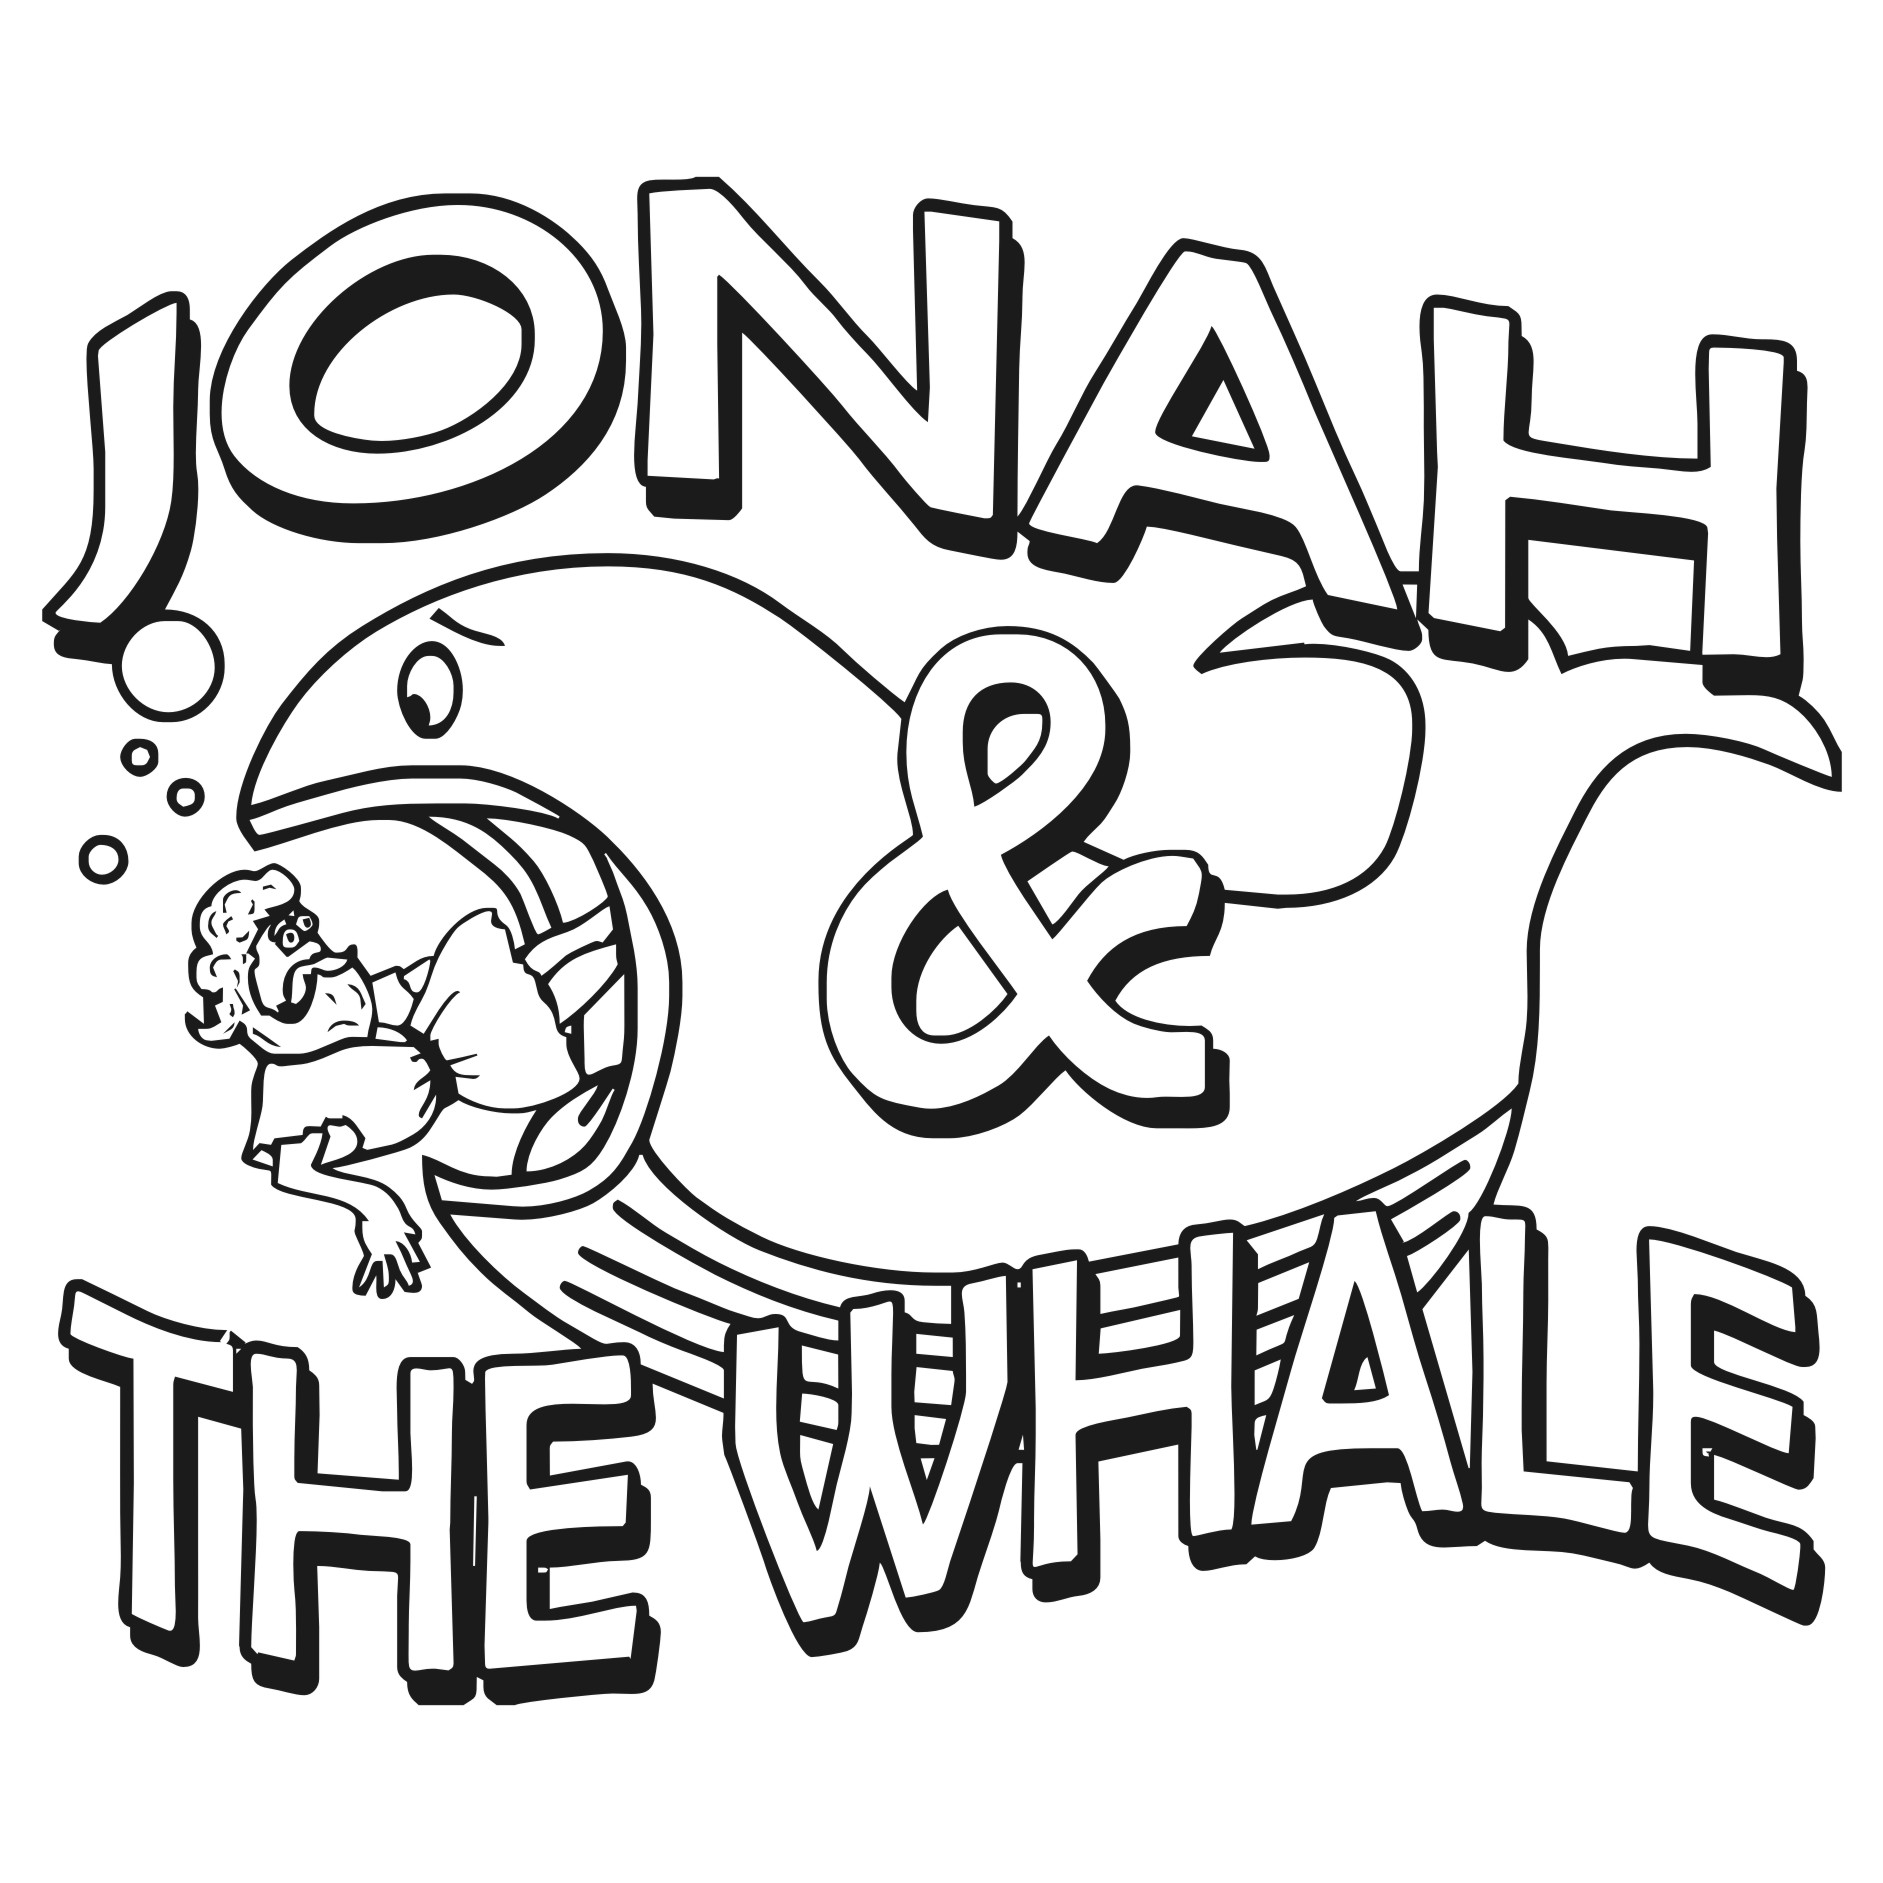 best jonah clipart 18433 clipartion com